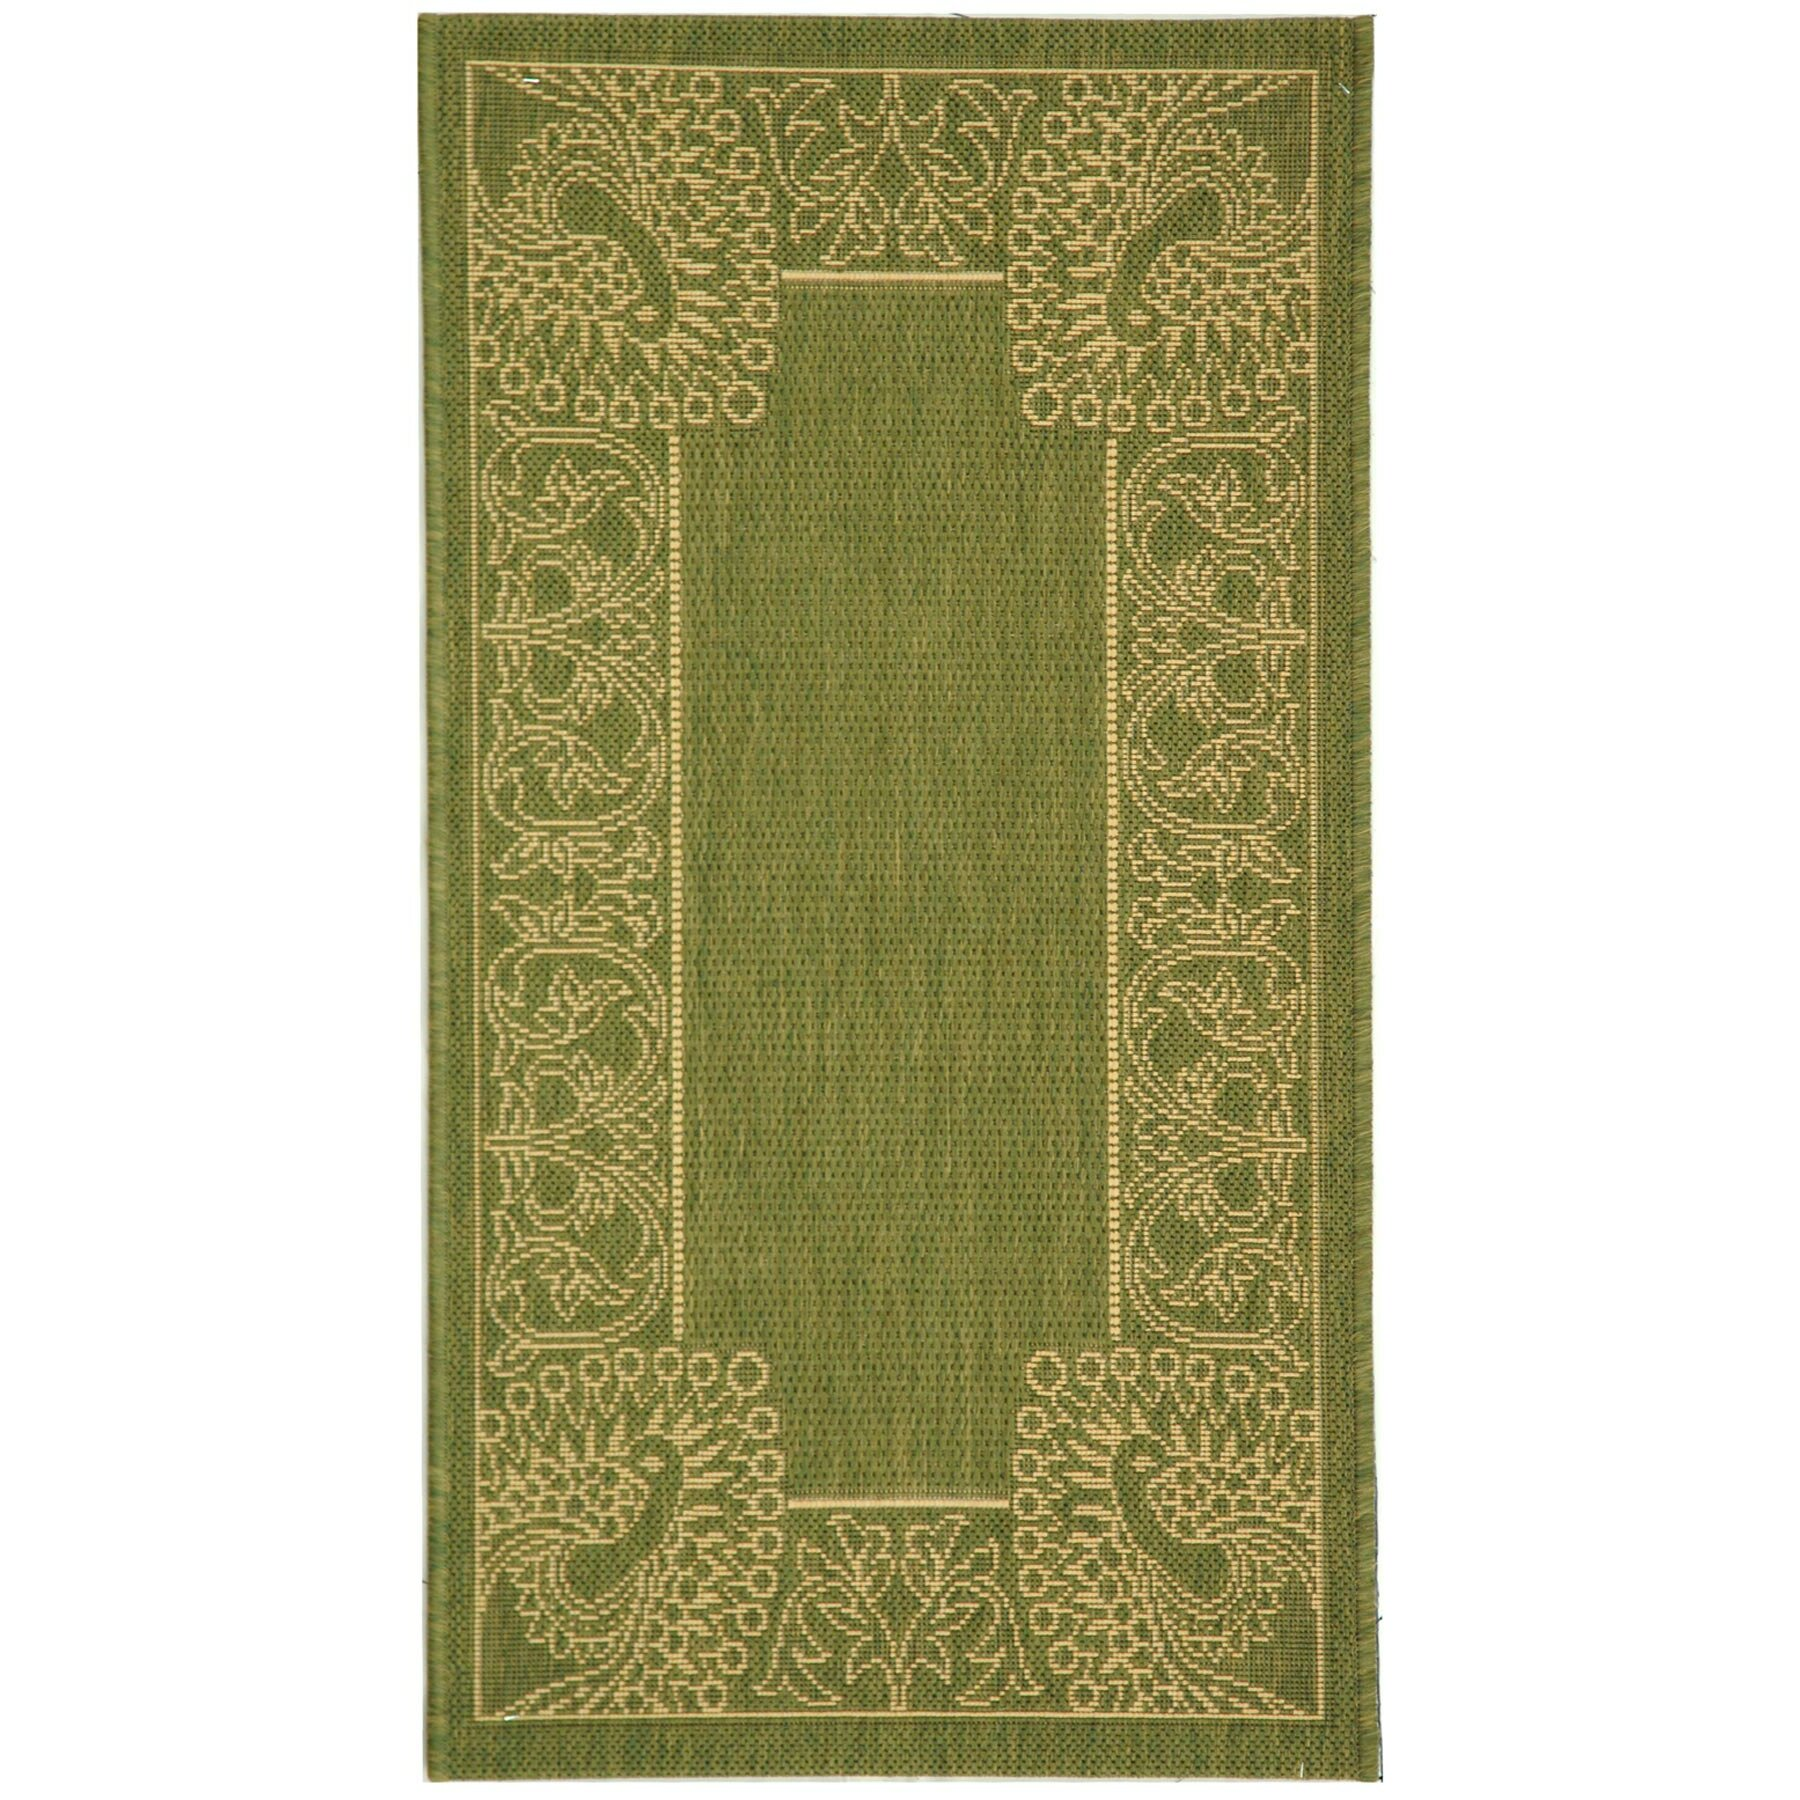 Safavieh Carpet: Safavieh Courtyard Olive/Natural Rug & Reviews